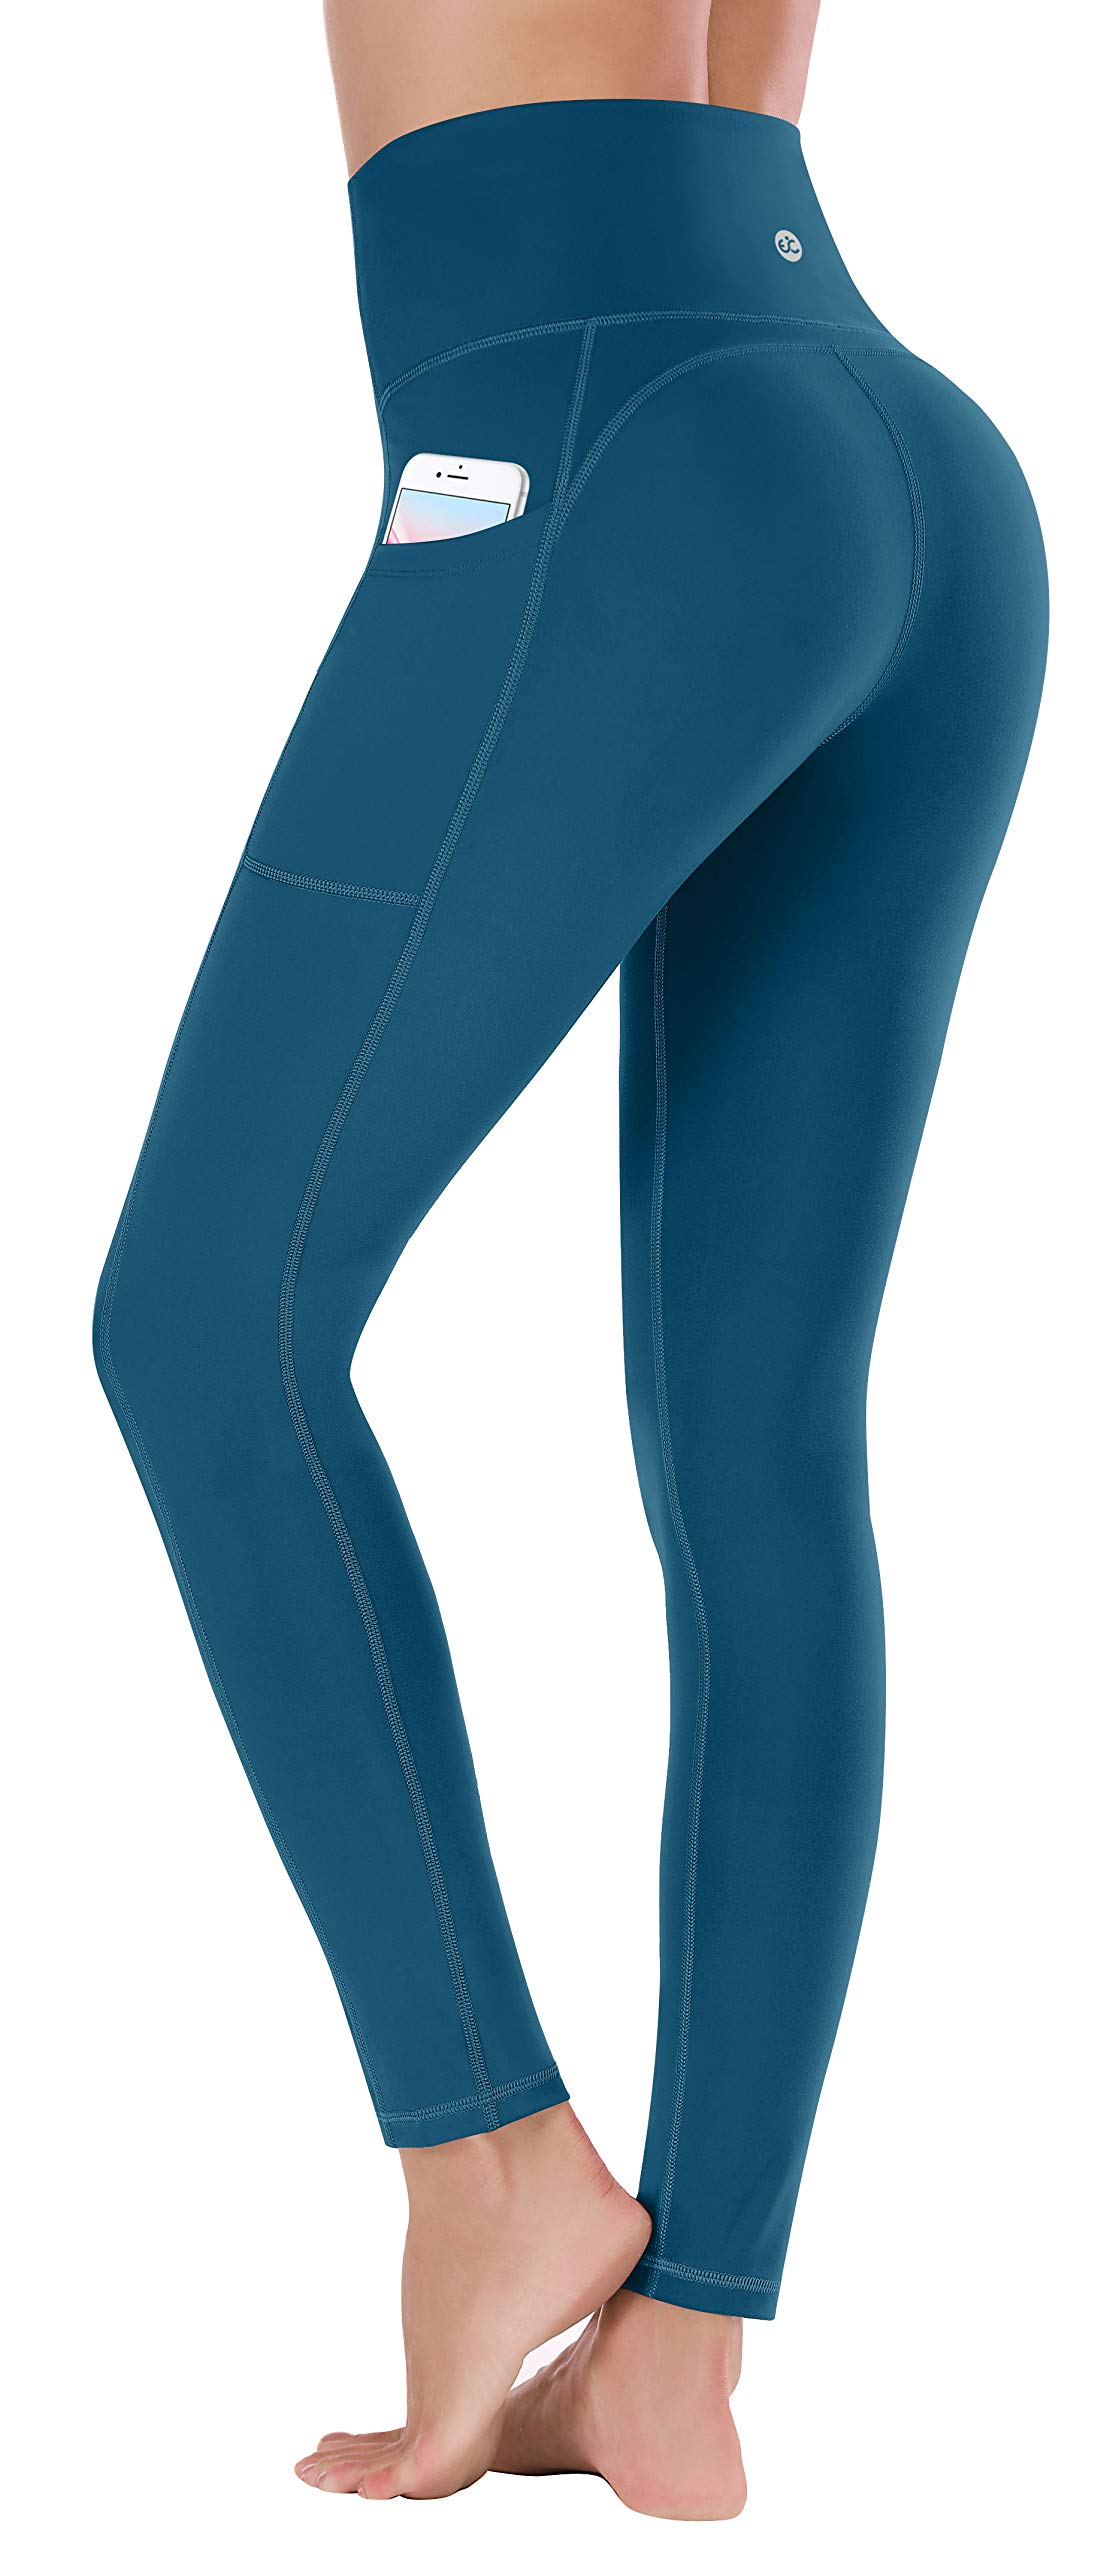 Ewedoos Women's Yoga Pants with Pockets - Leggings with Pockets, High Waist Tummy Control Non See-Through Workout Pants (EW320 PEACOCK BLUE, X-Large) by Ewedoos